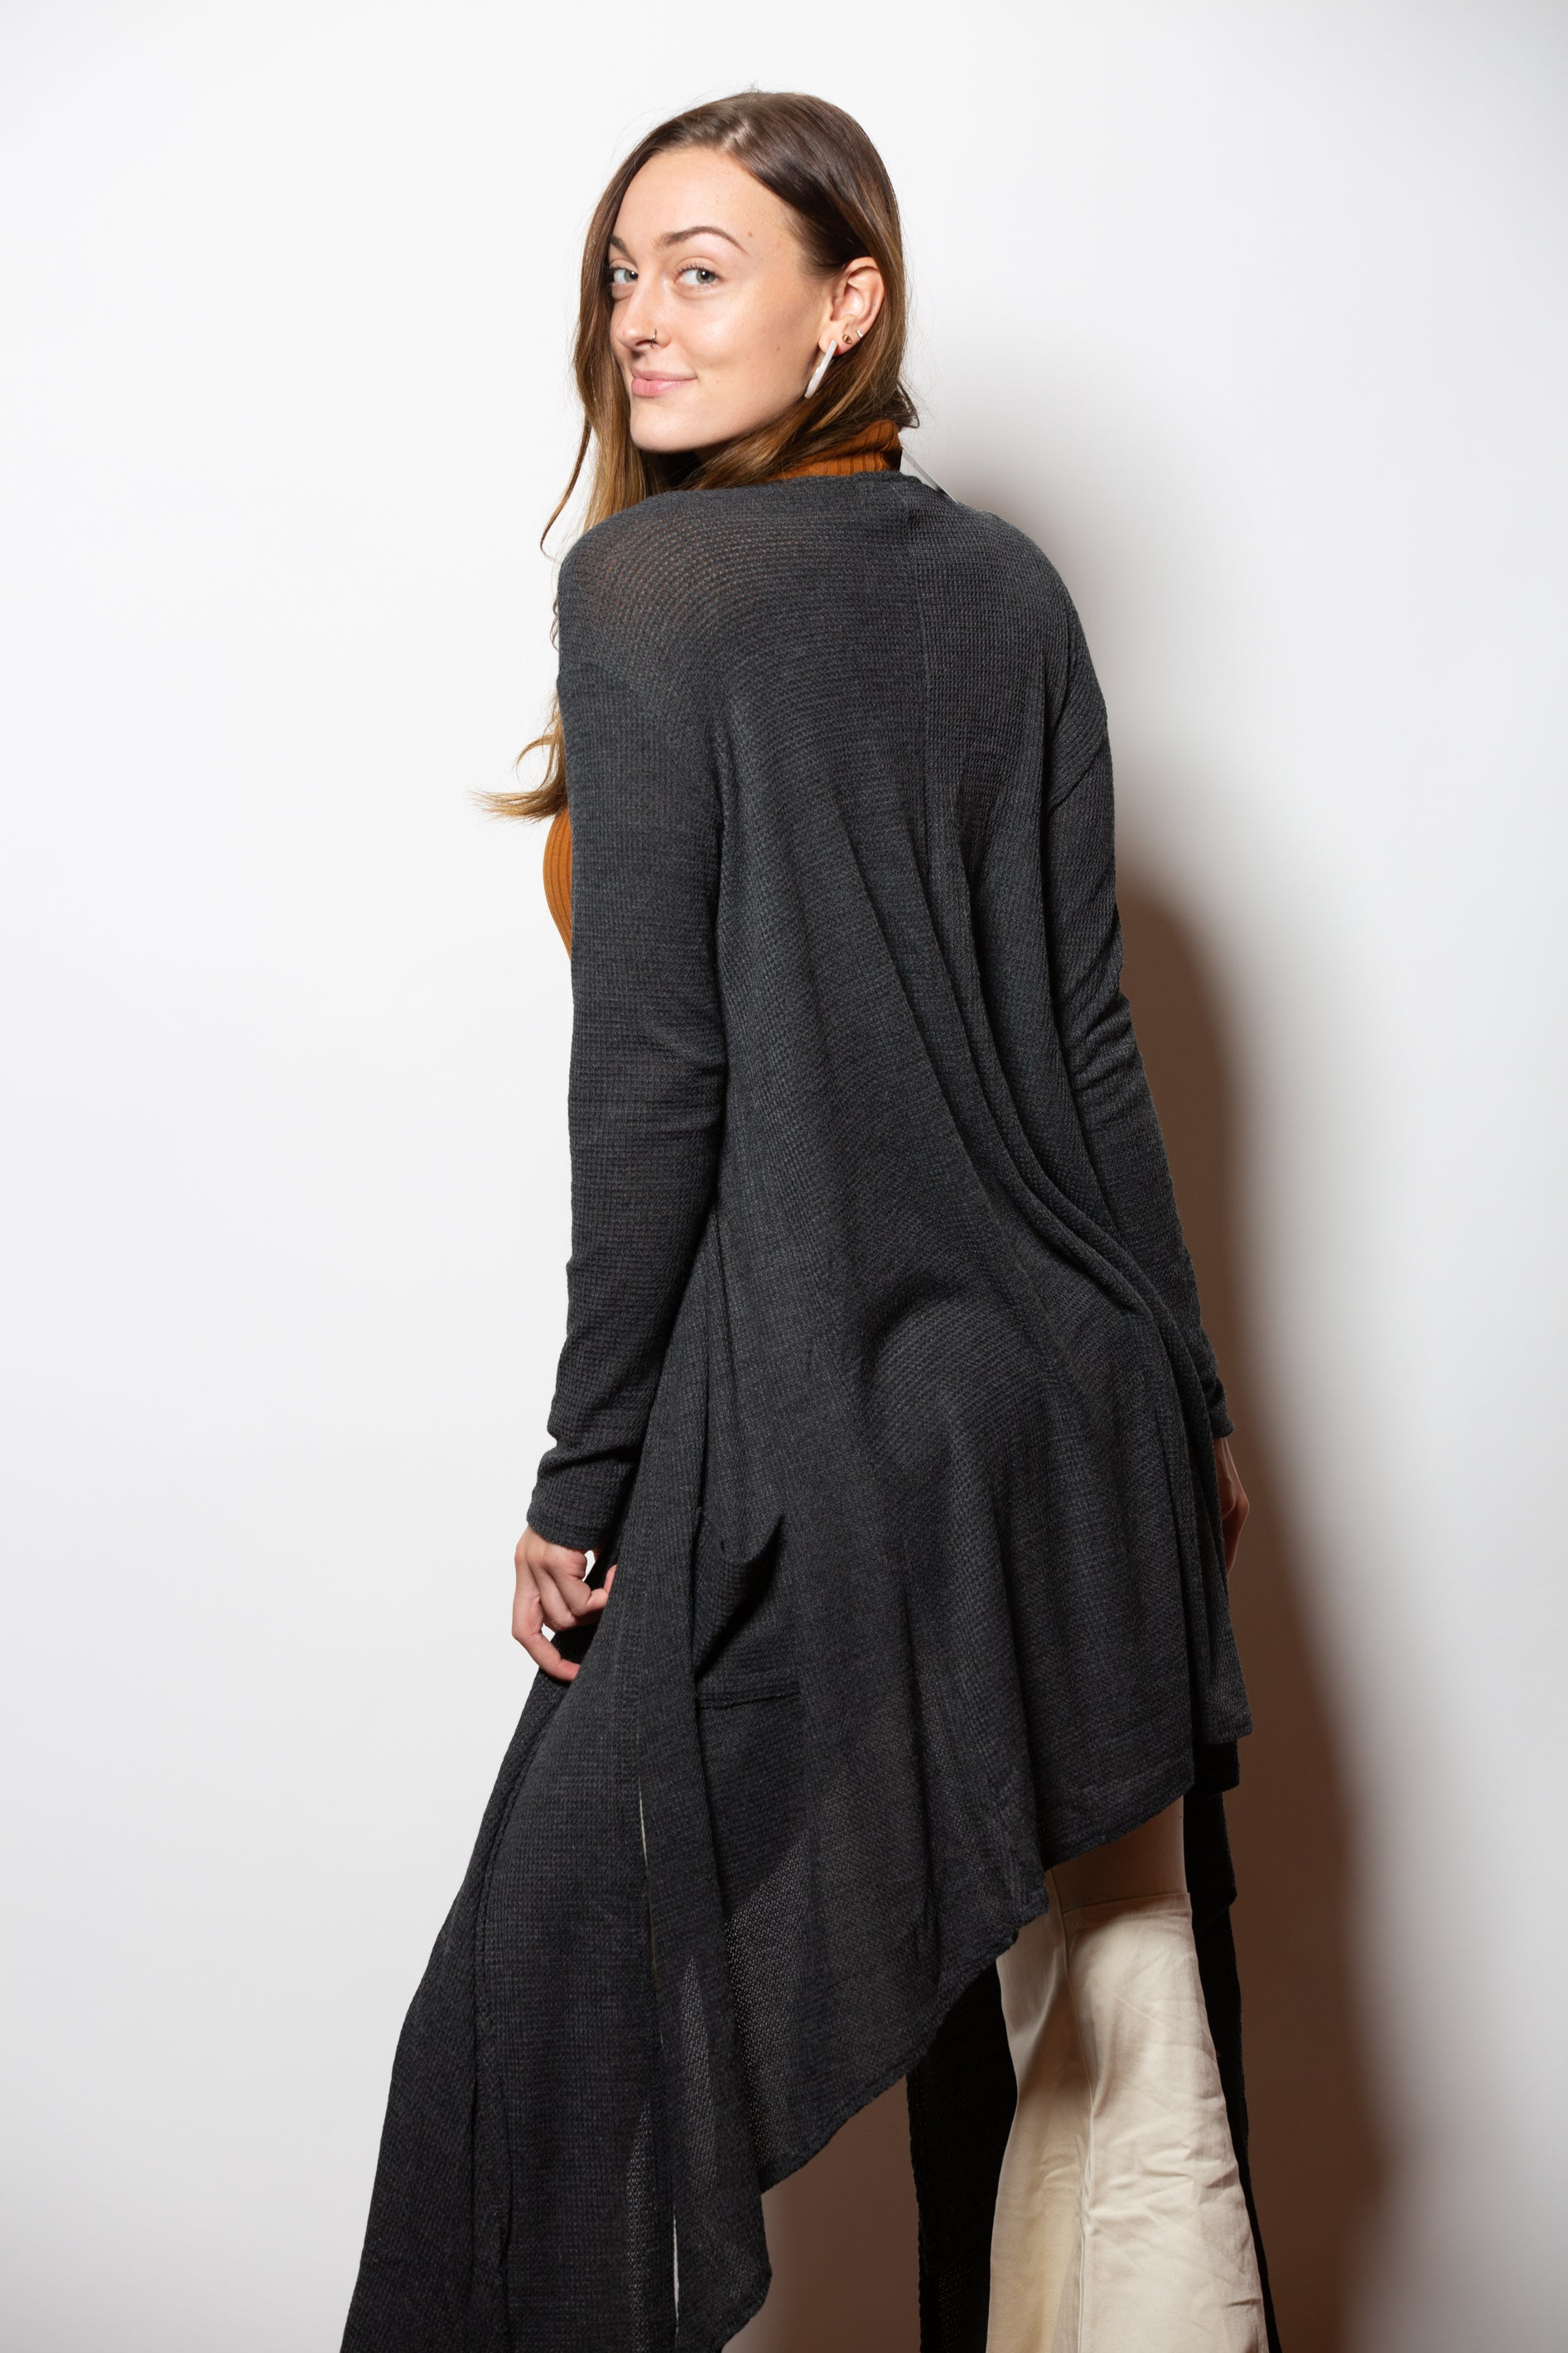 Second Chance Textured Charcoal Duster Cardigan - impromptu boutique